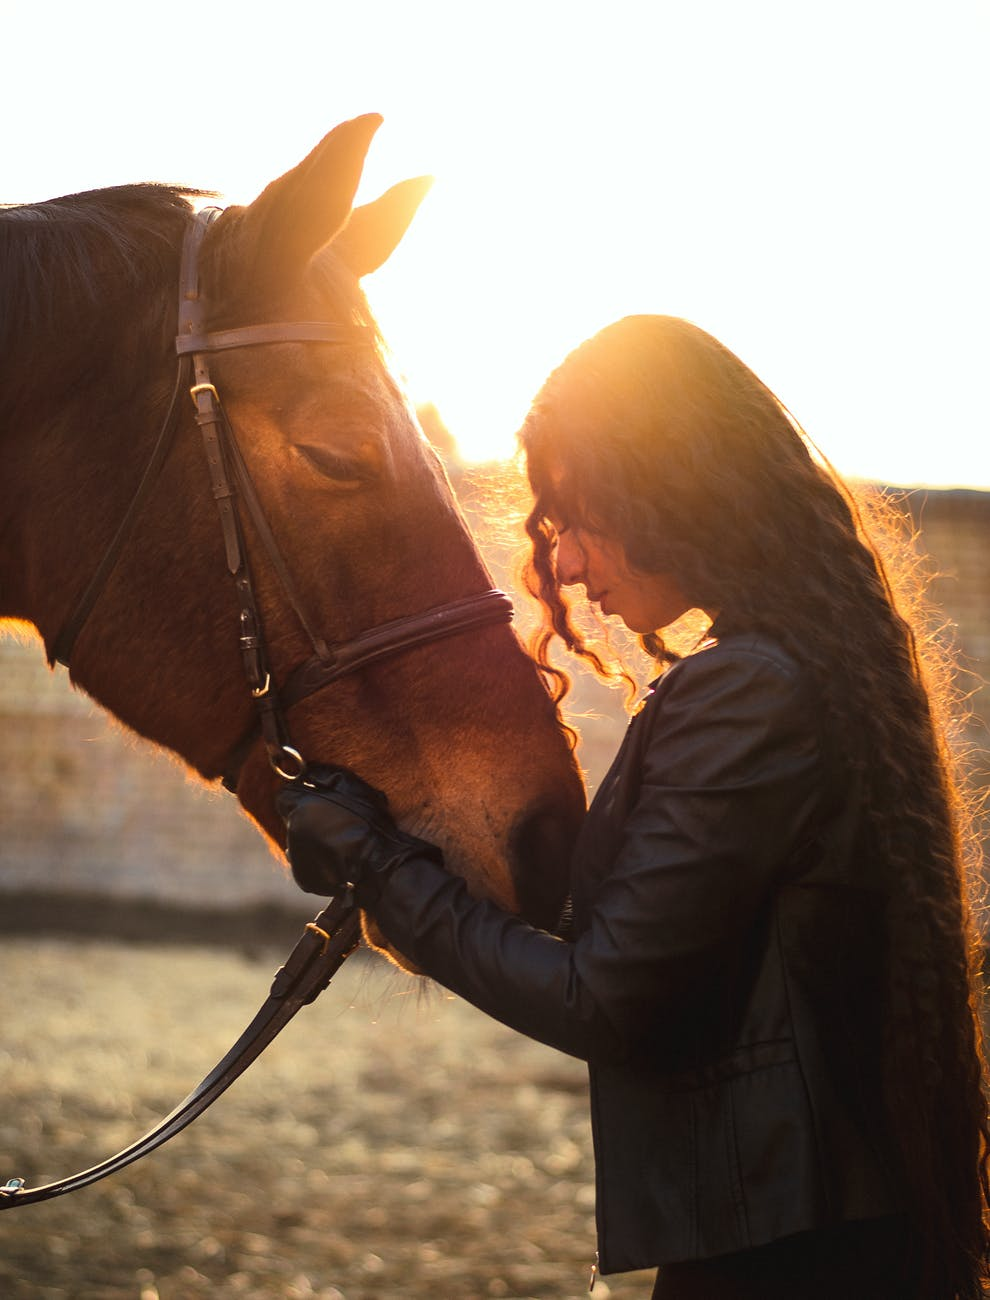 young woman stroking horse in sunlight